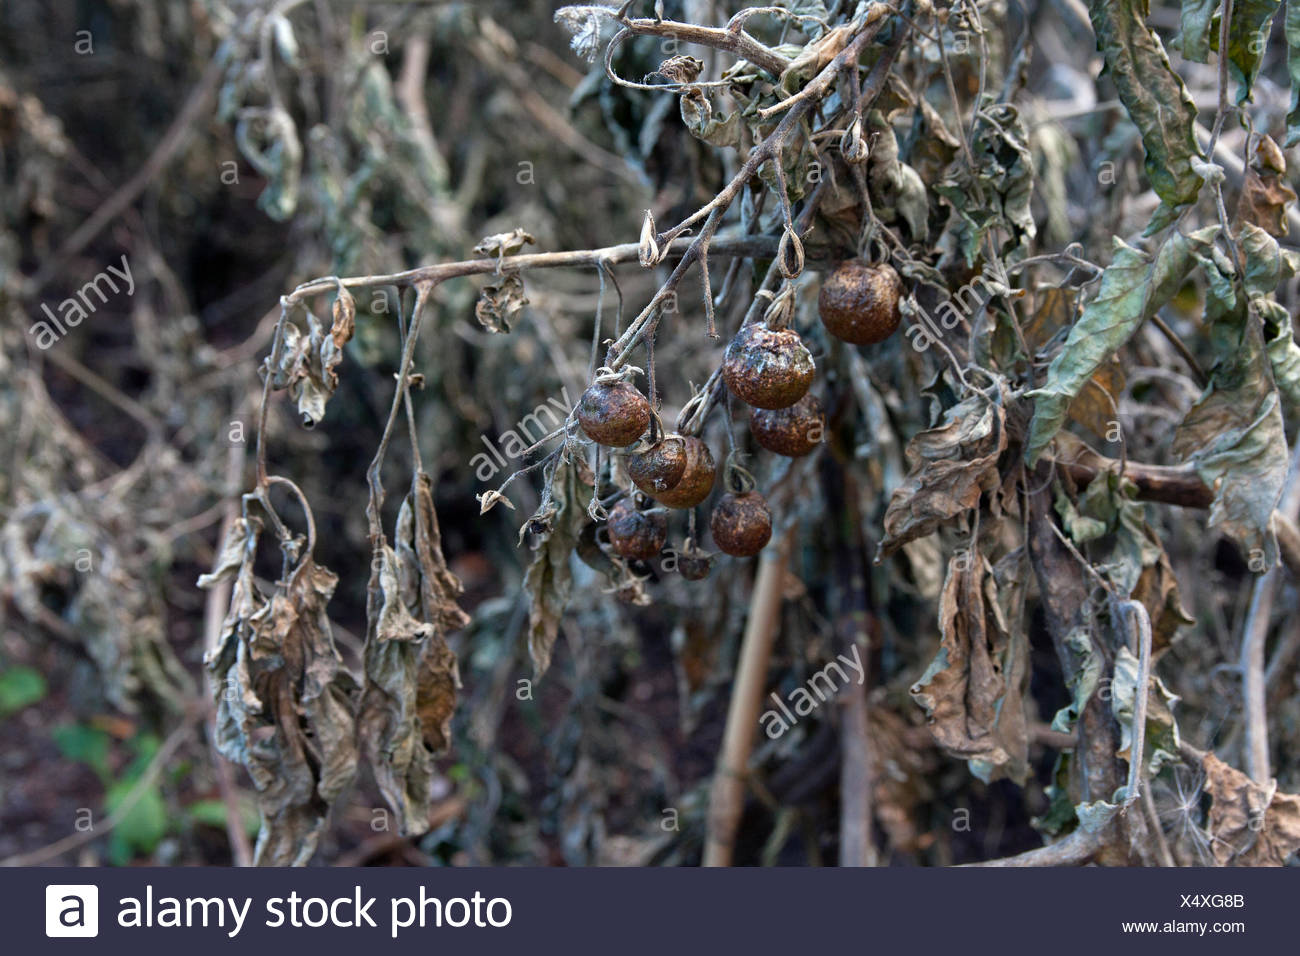 tomatoes infected by tomato spotted wilt virus (TSWV) caused by thrips, Warwickshire - Stock Image